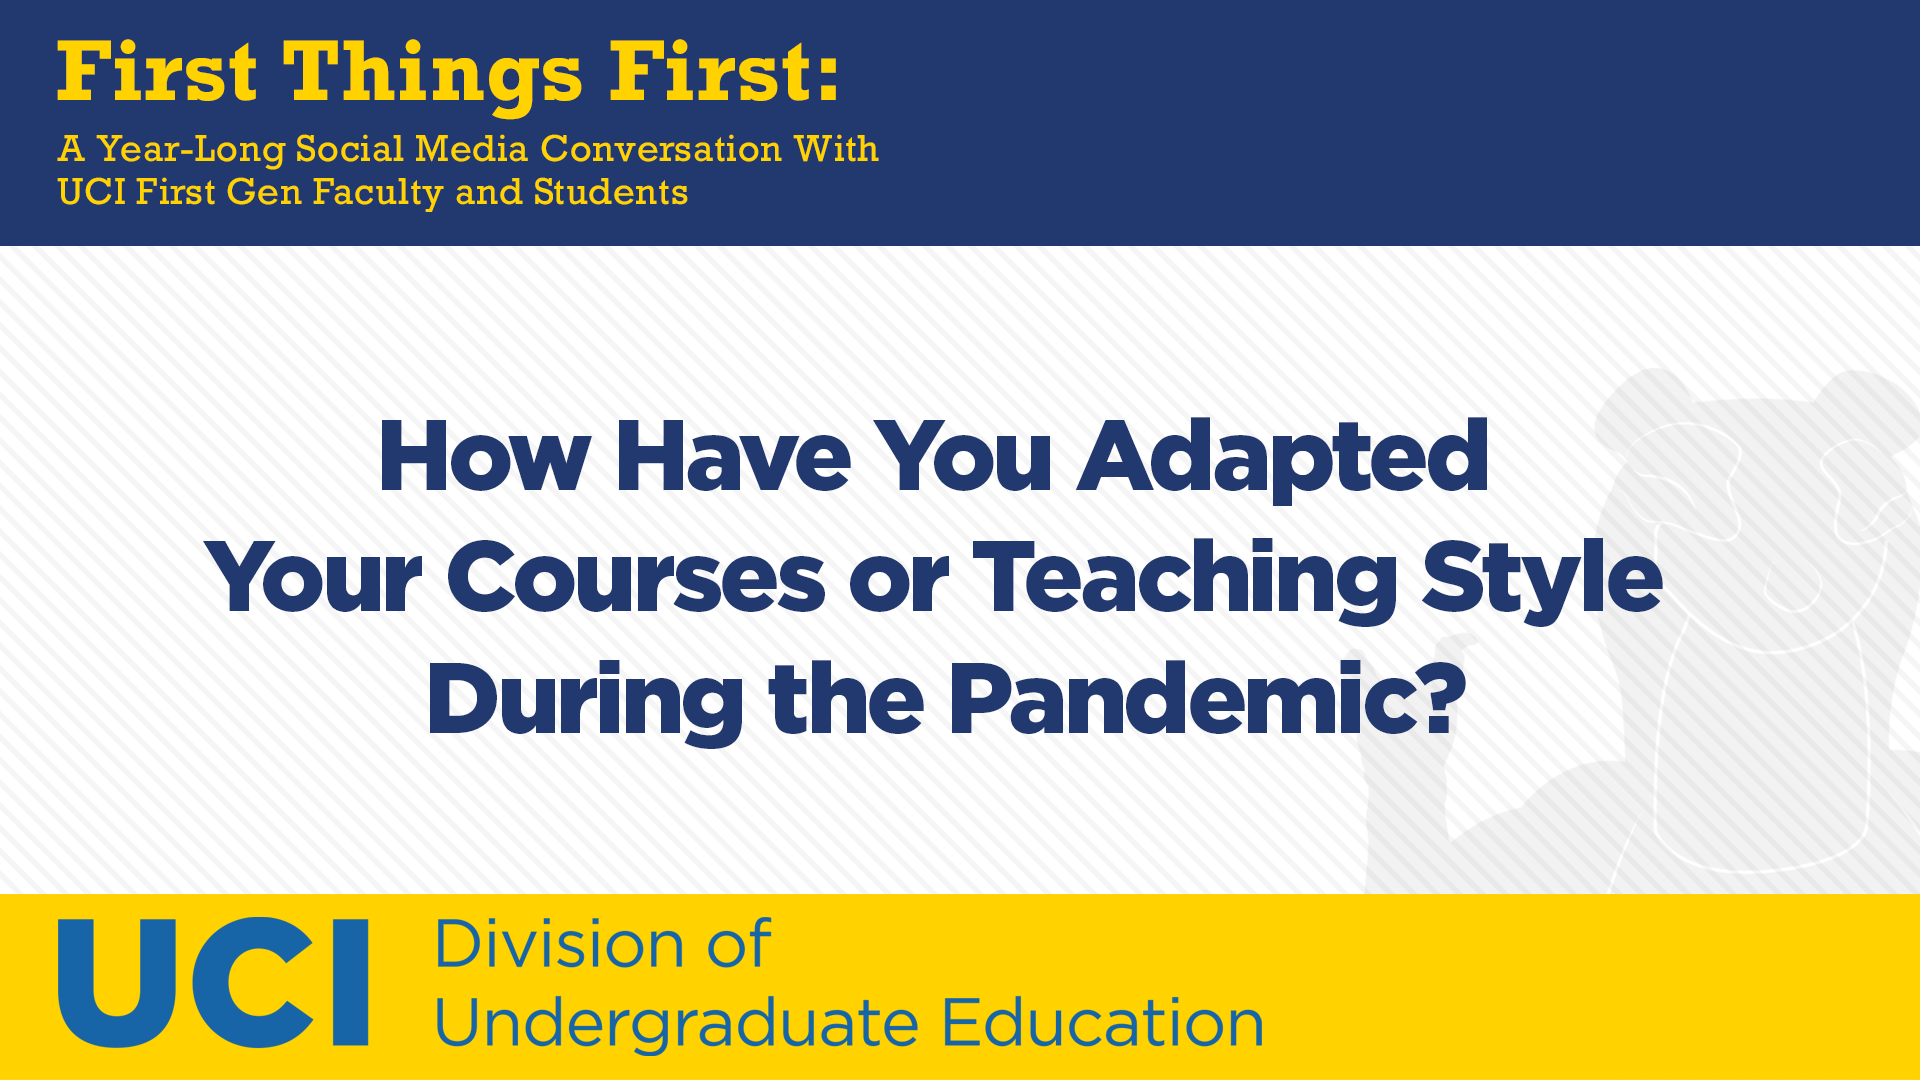 How Have You Adapted Your Courses or Teaching Style During the Pandemic?